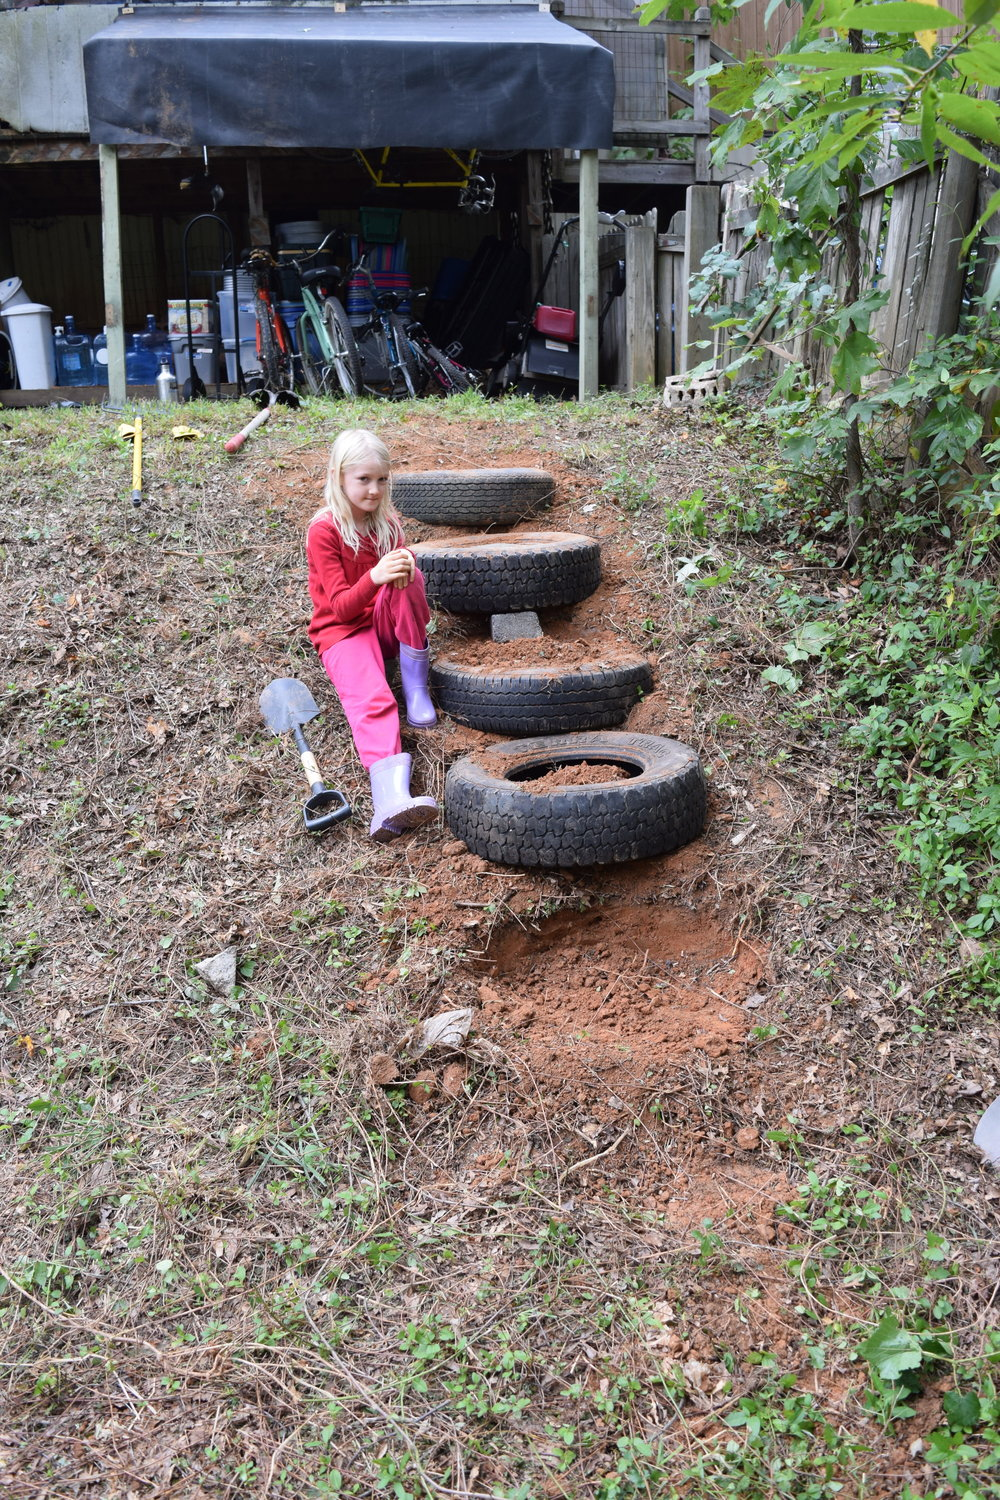 - Gaia helping me build some tire stairs down to the fire pit